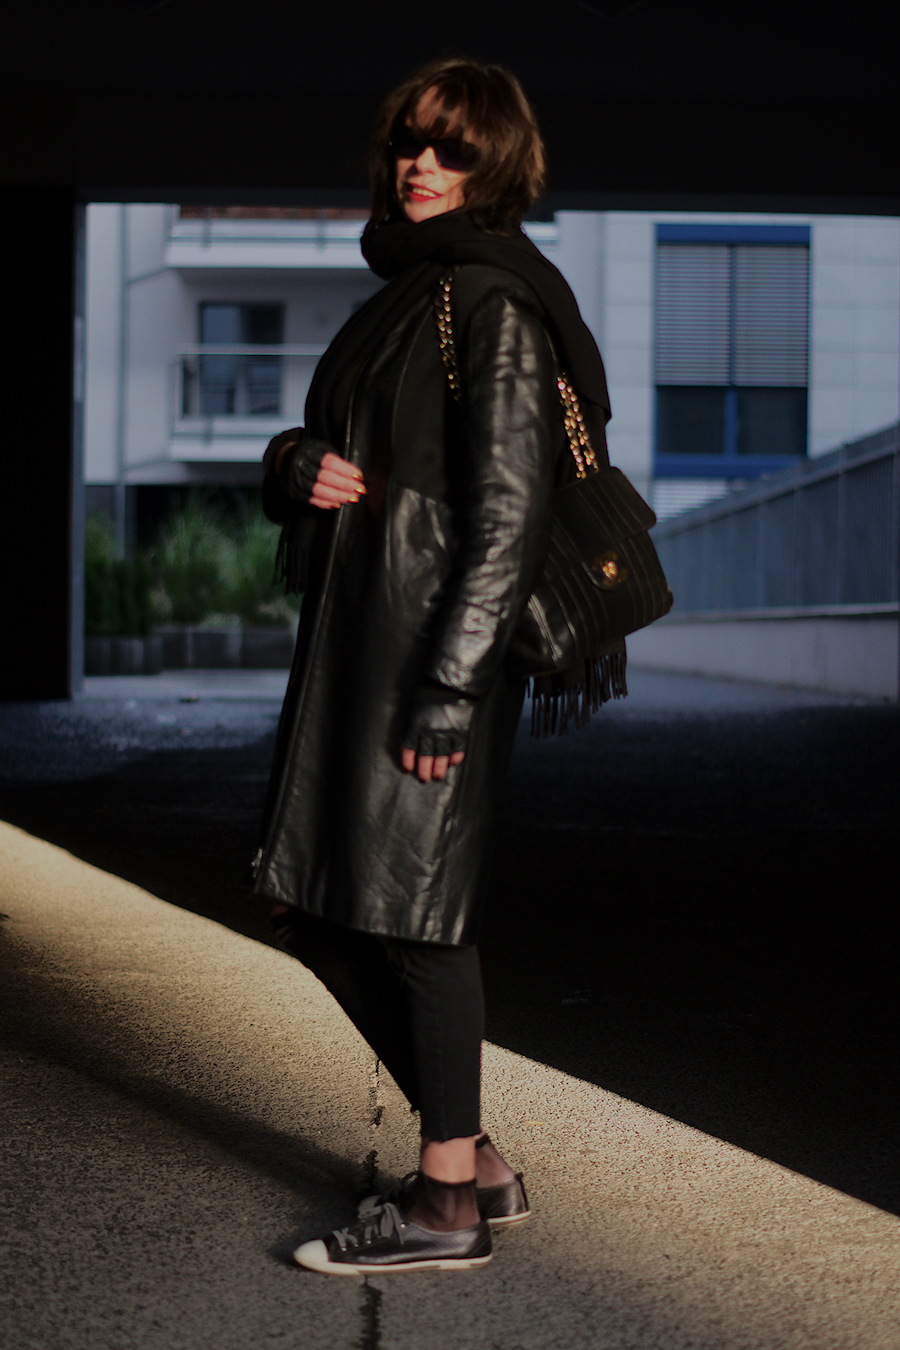 just-take-a-look-berlin-all-black-everything